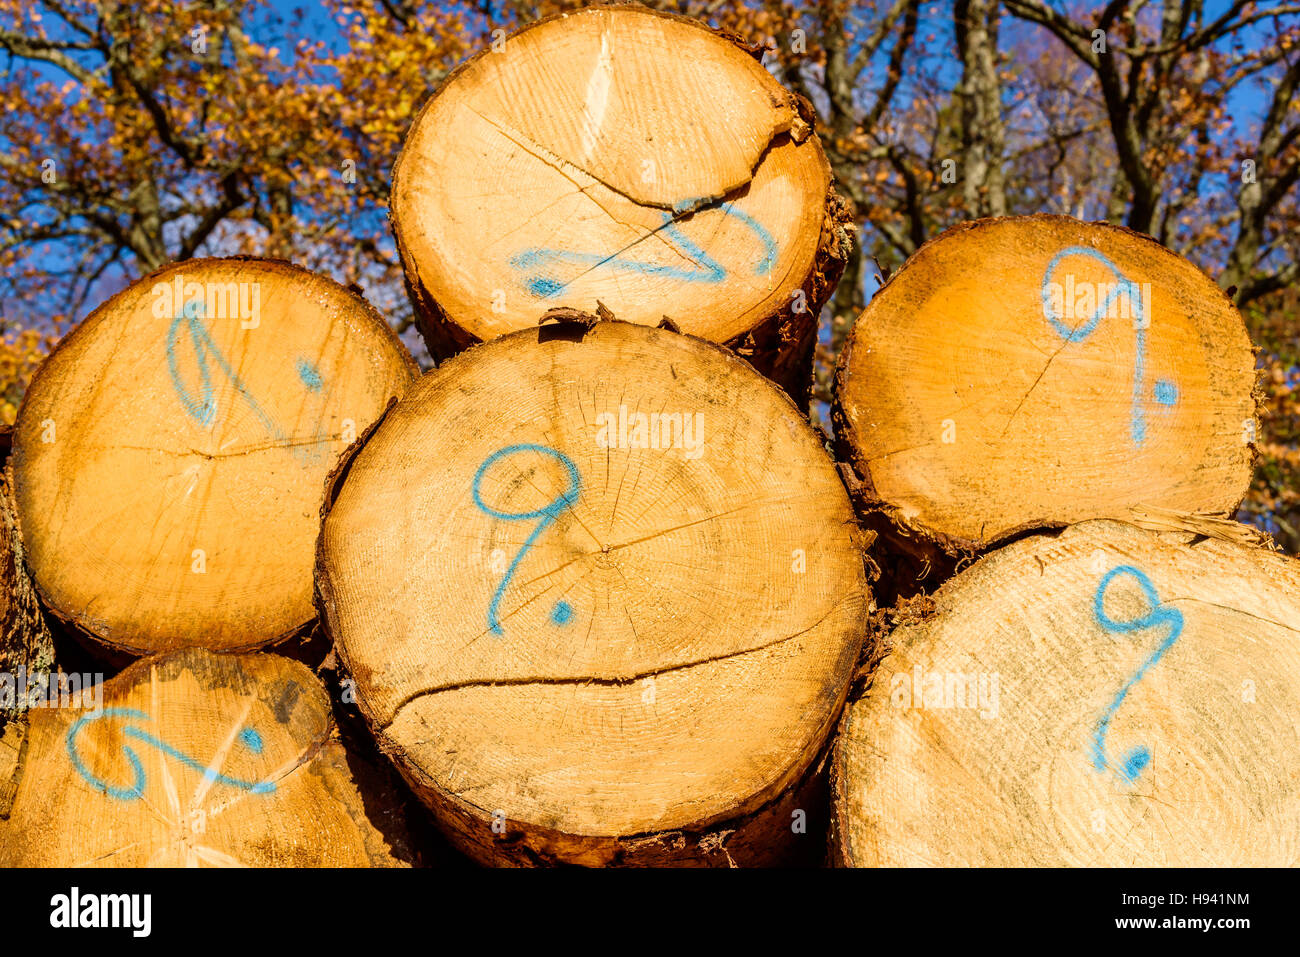 Ends of timber or lumber with the number nine written on them. The number indicates quality or usage. - Stock Image